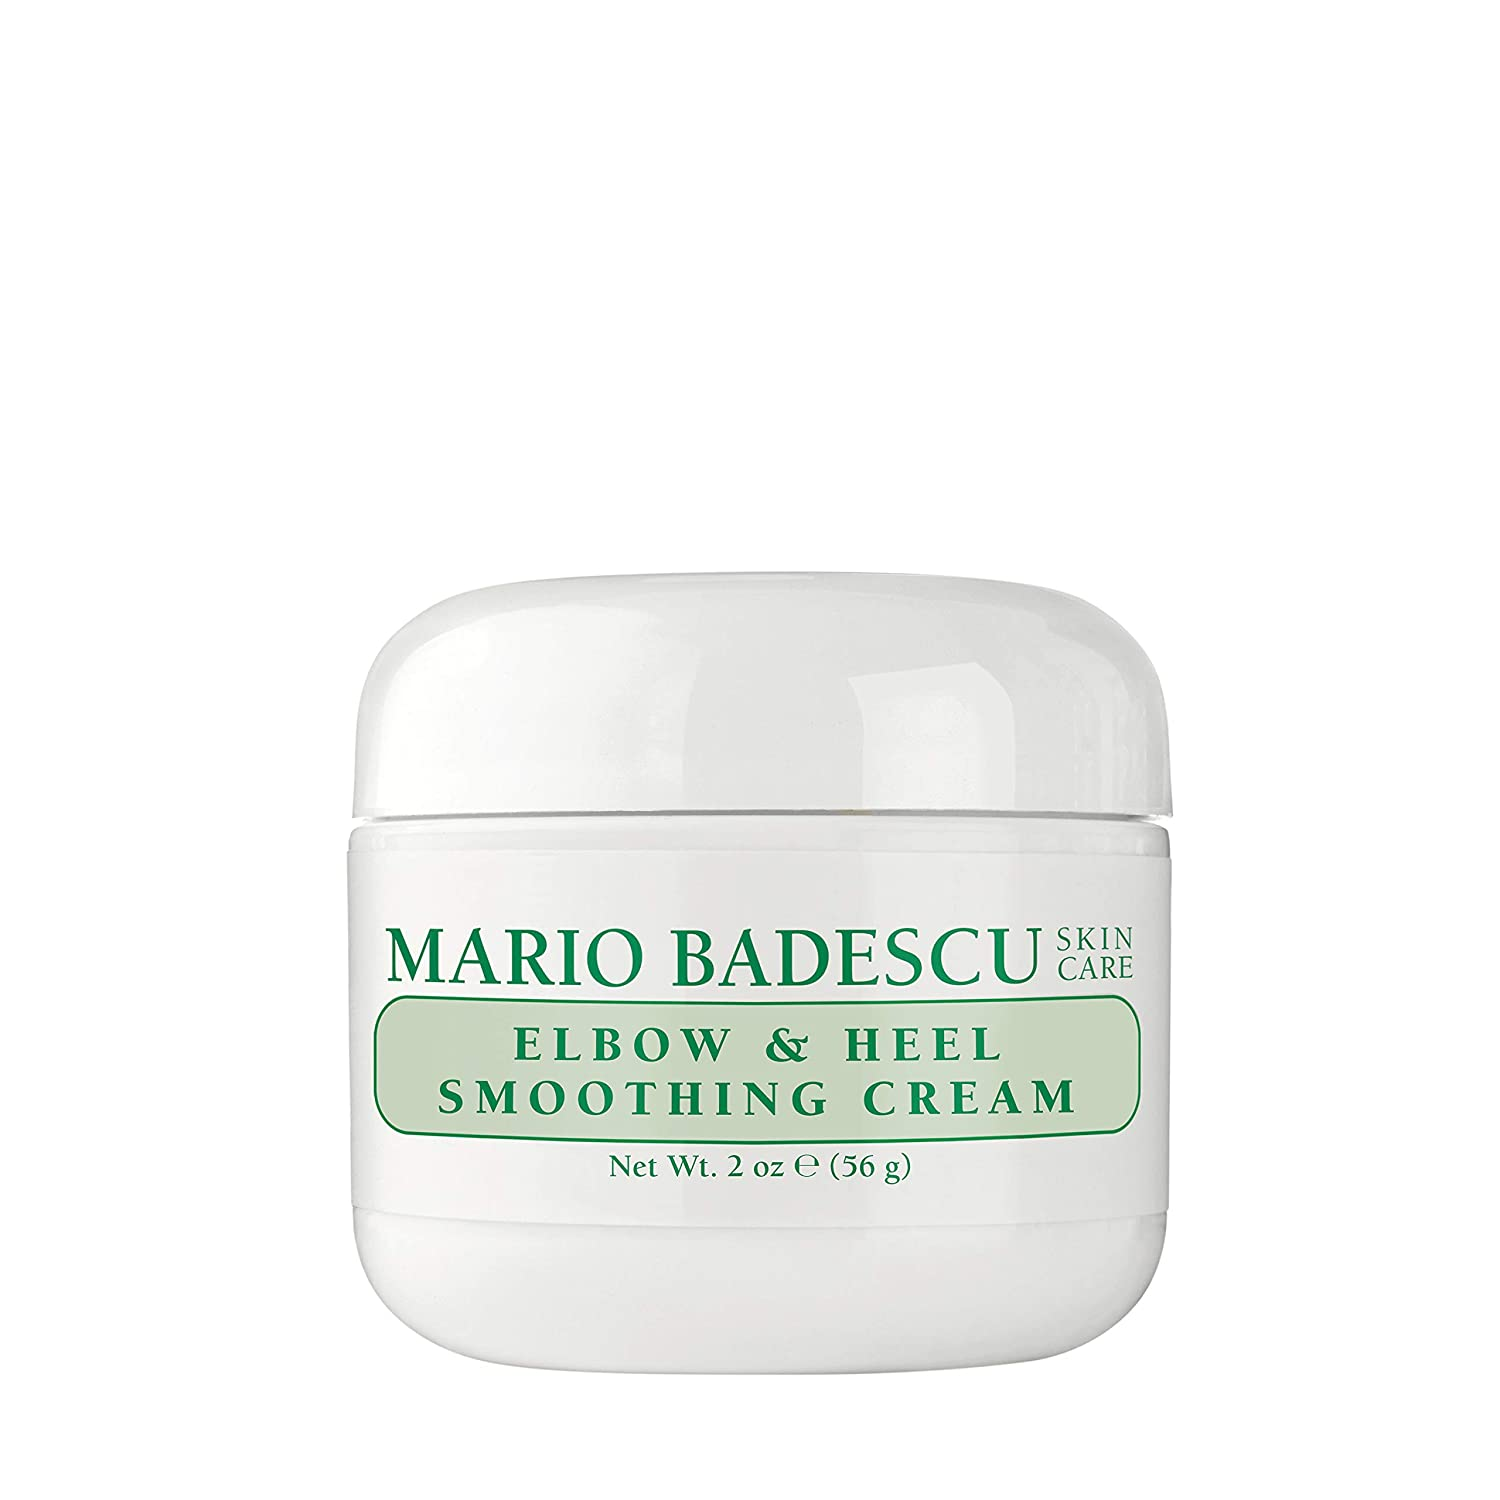 Mario Badescu Elbow & Heel Smoothing Cream